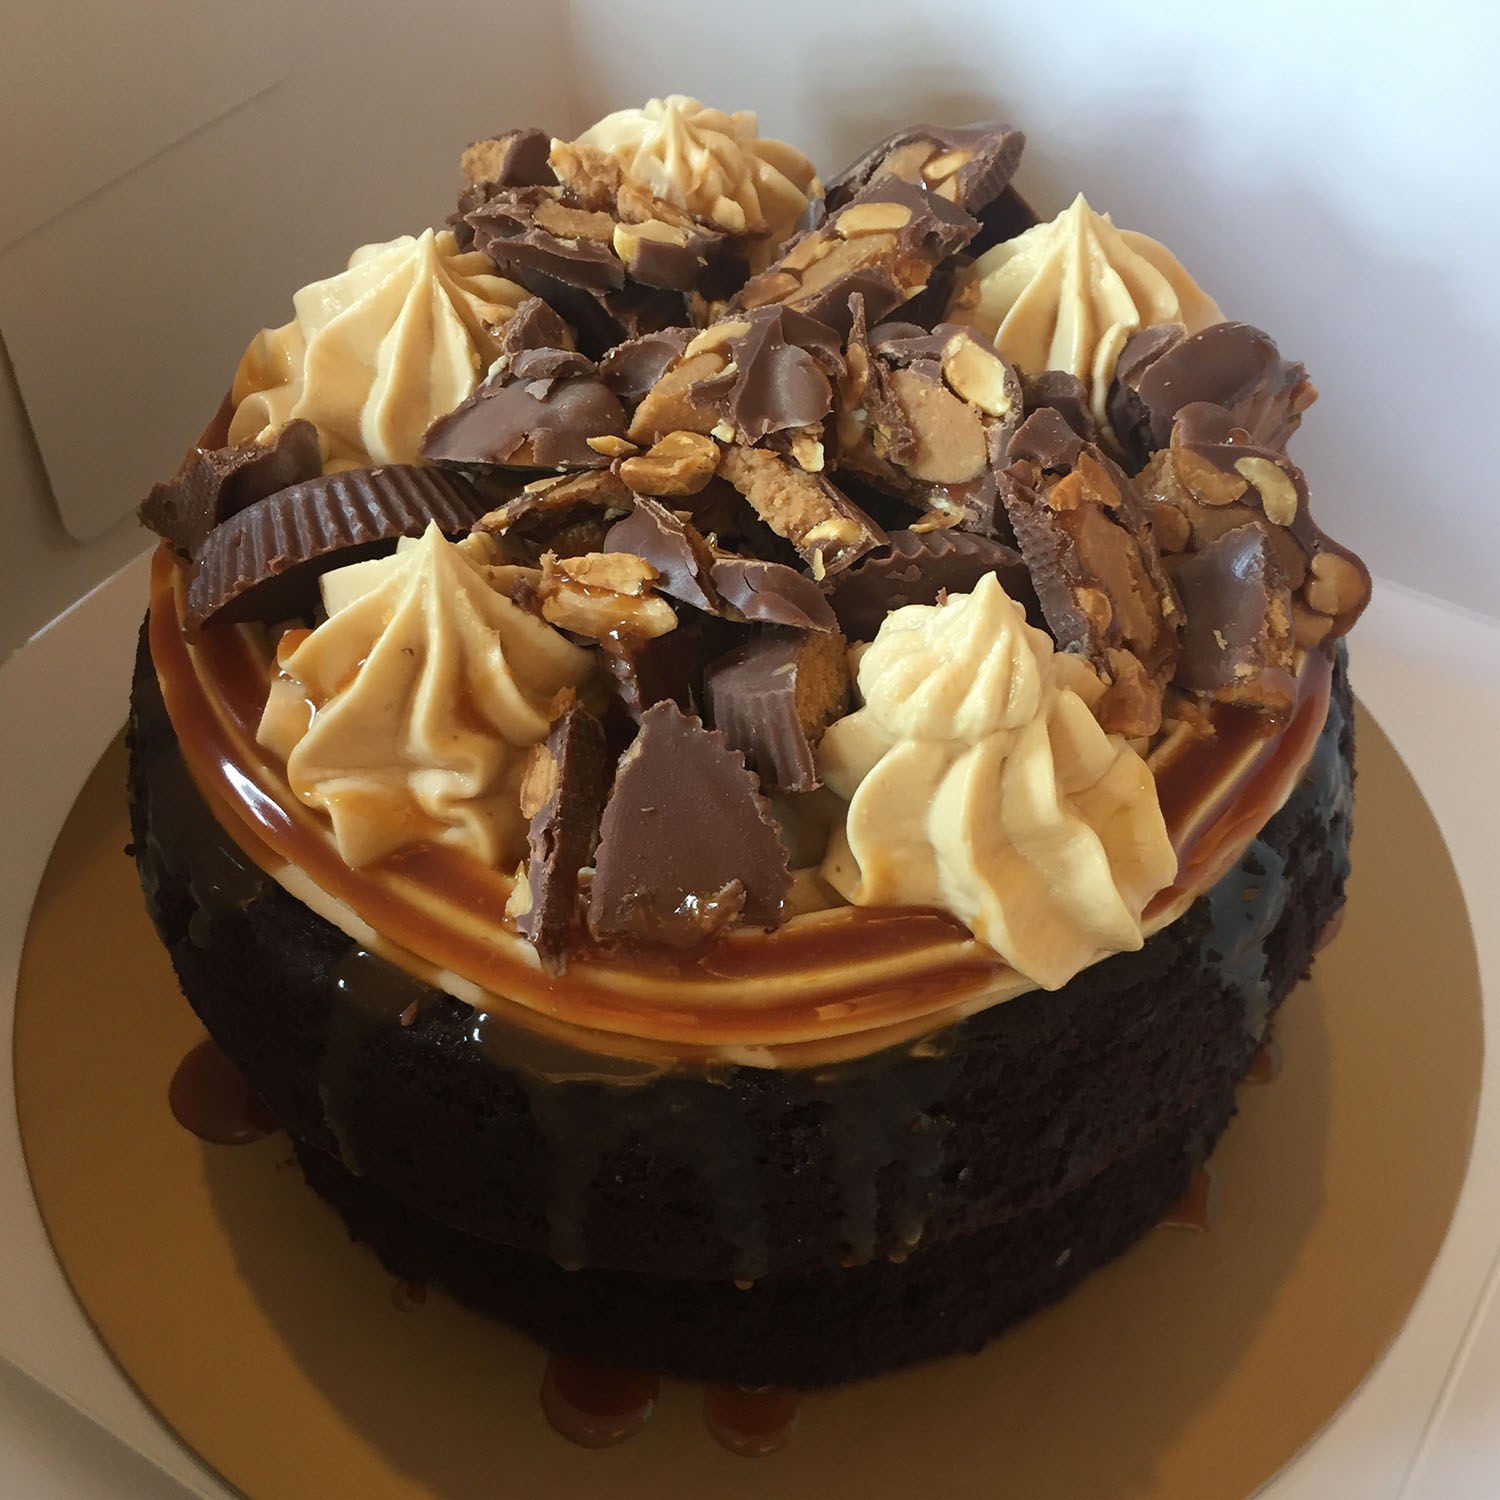 Snickers  - Half baked chocolate cake with peanut butter buttercream topped with peanut buttercups and caramel.7